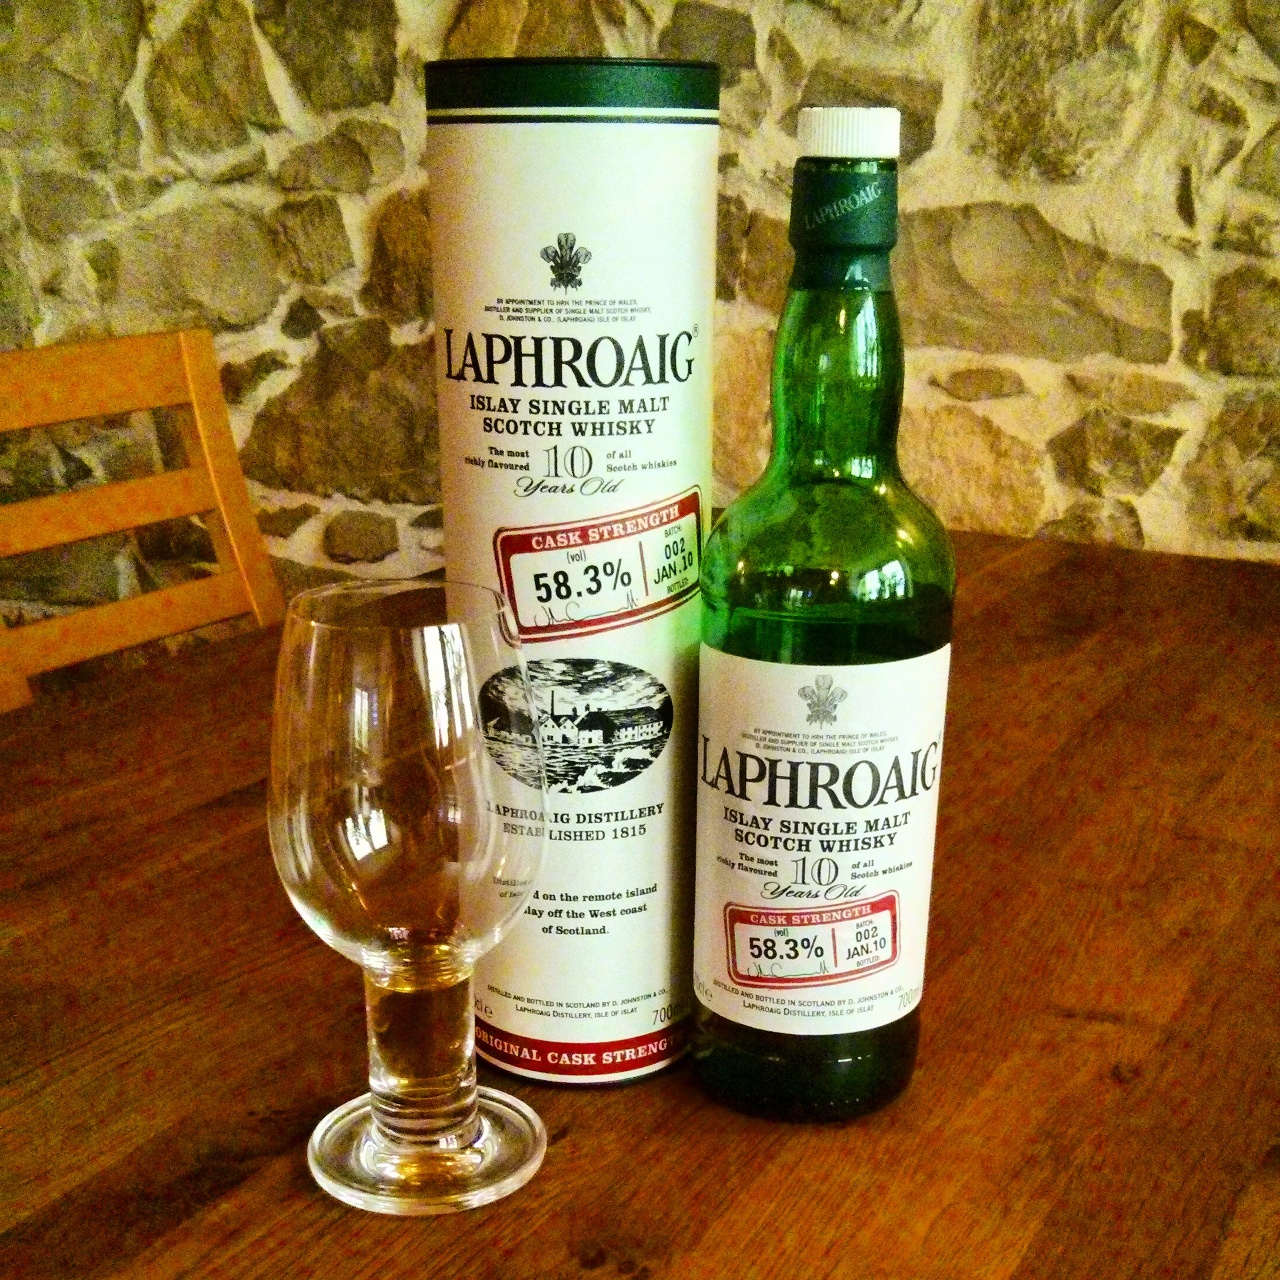 Laphroaig 10y Cask Strength batch 002 Jan. 2010